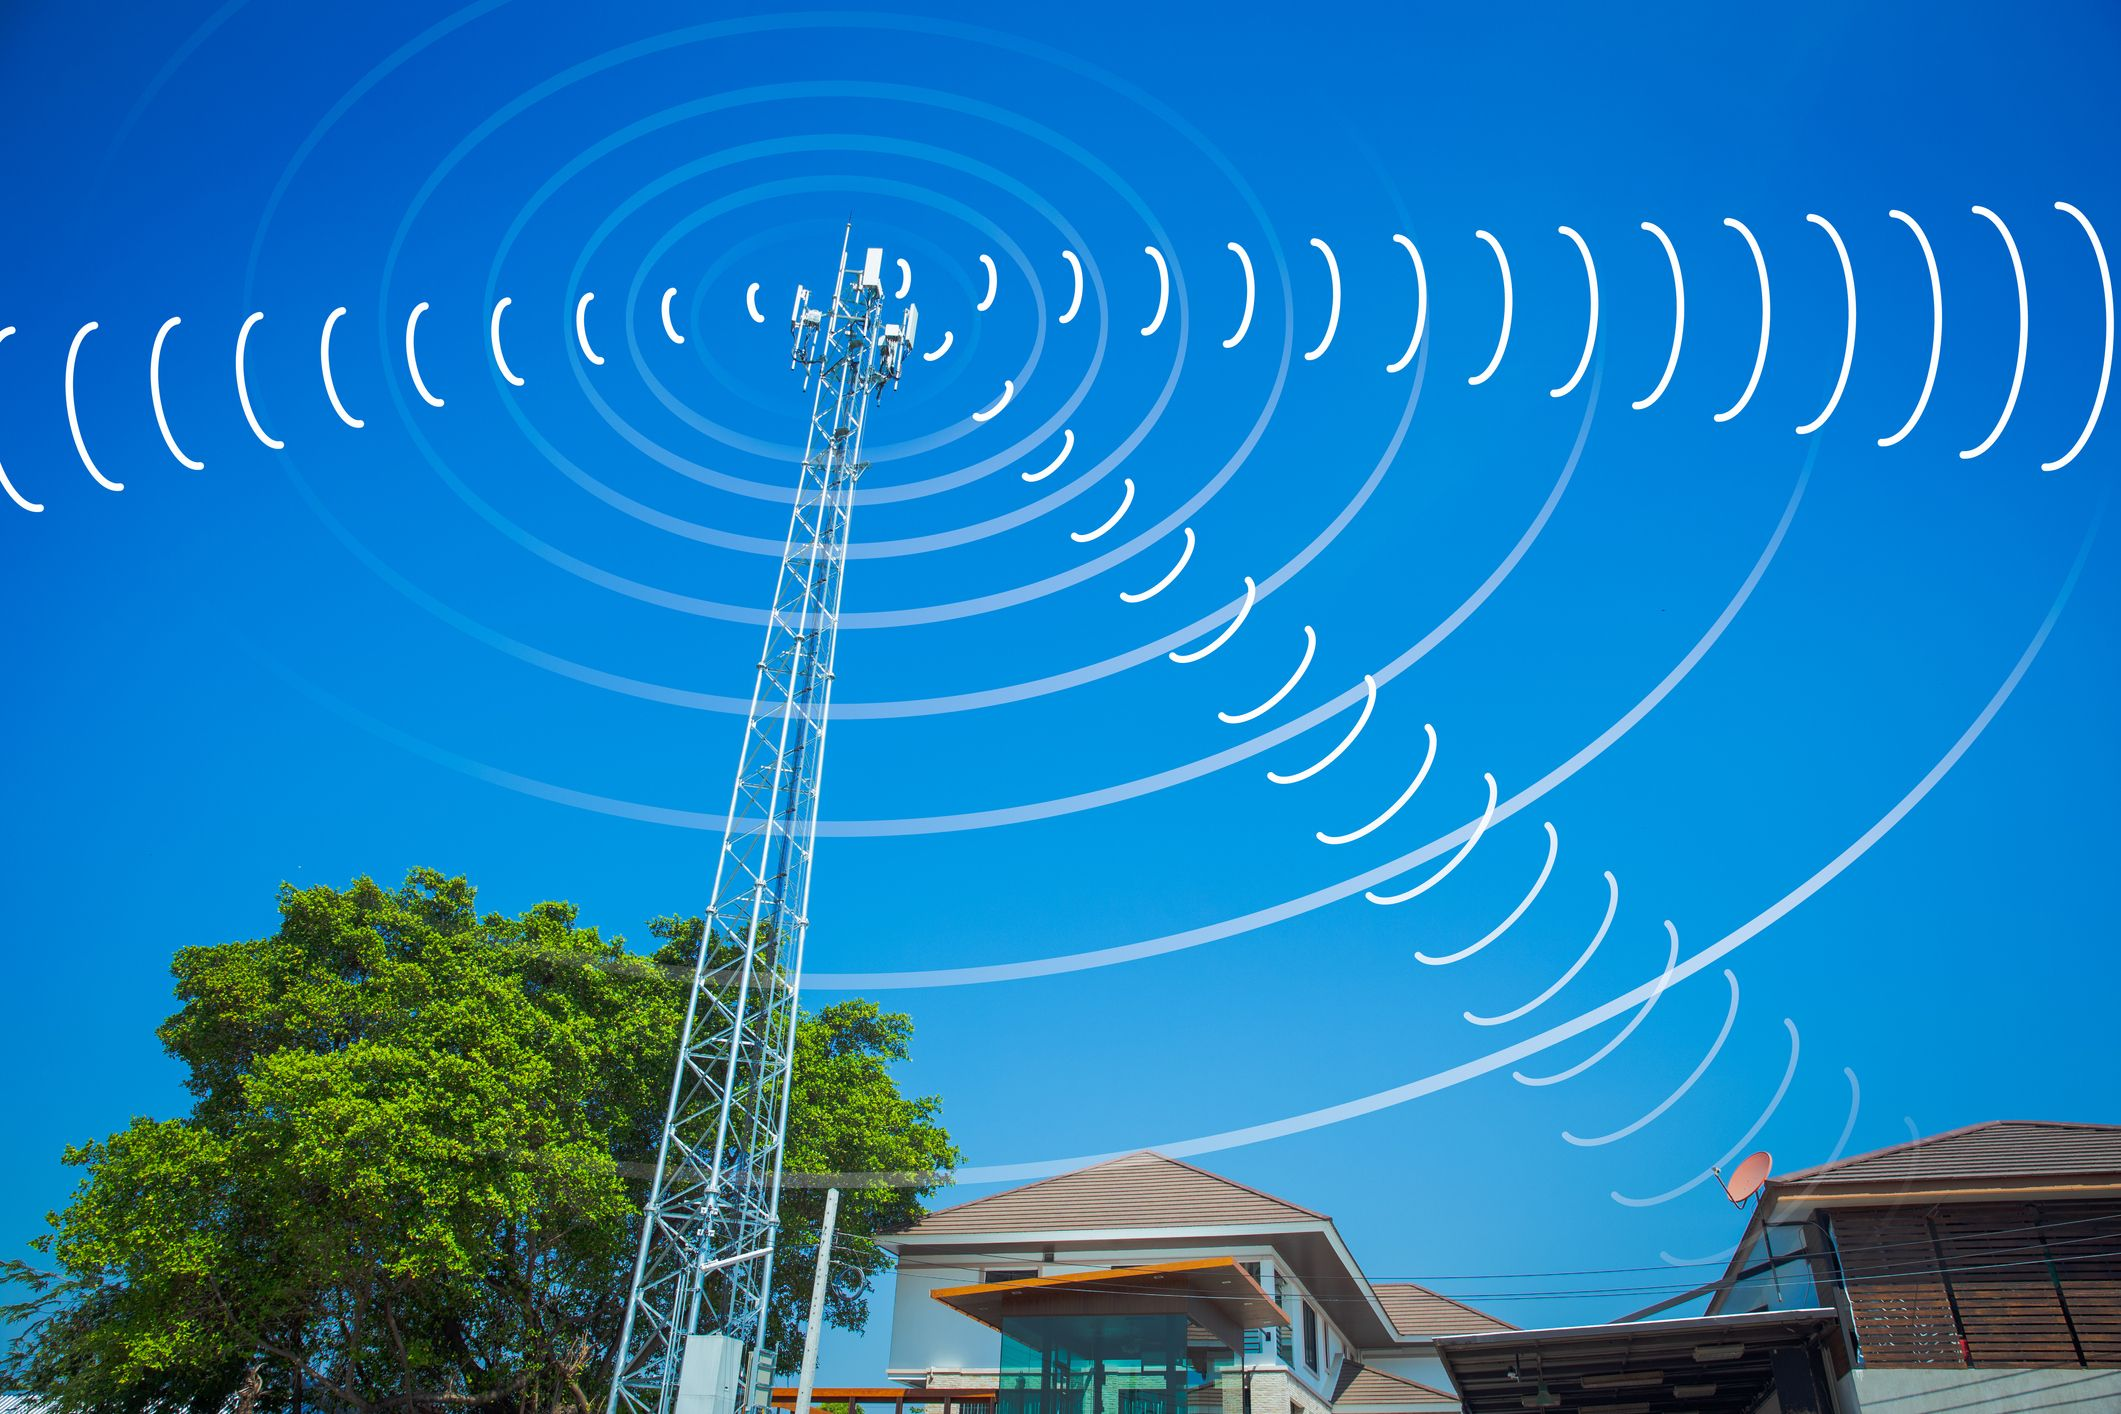 New Antenna Tech Could Make Your Phone Signal Ridiculously Strong